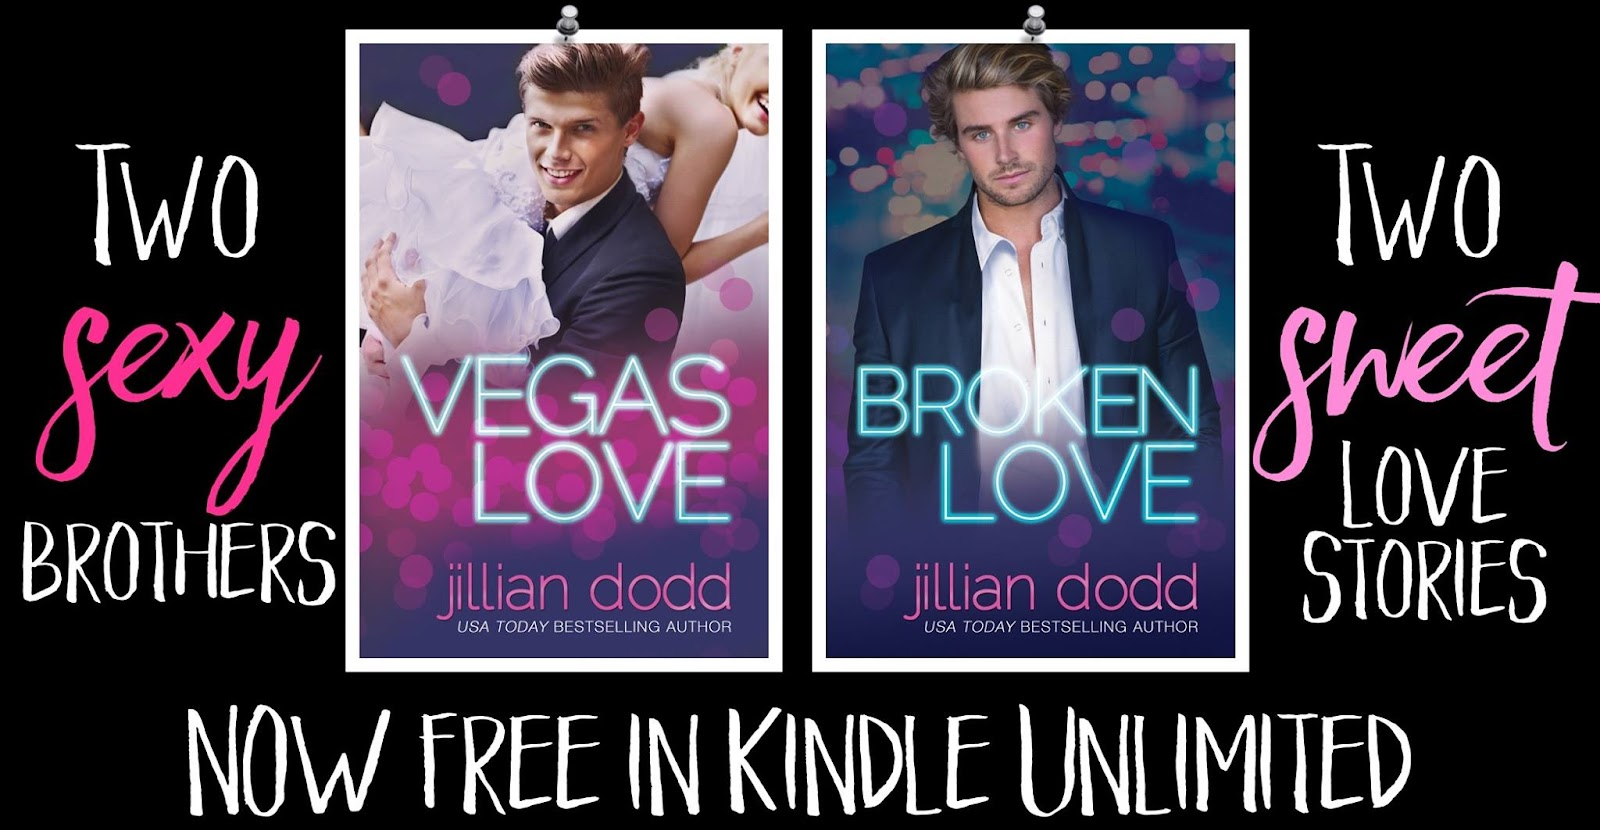 broken love Jillain dodd teaser.jpg